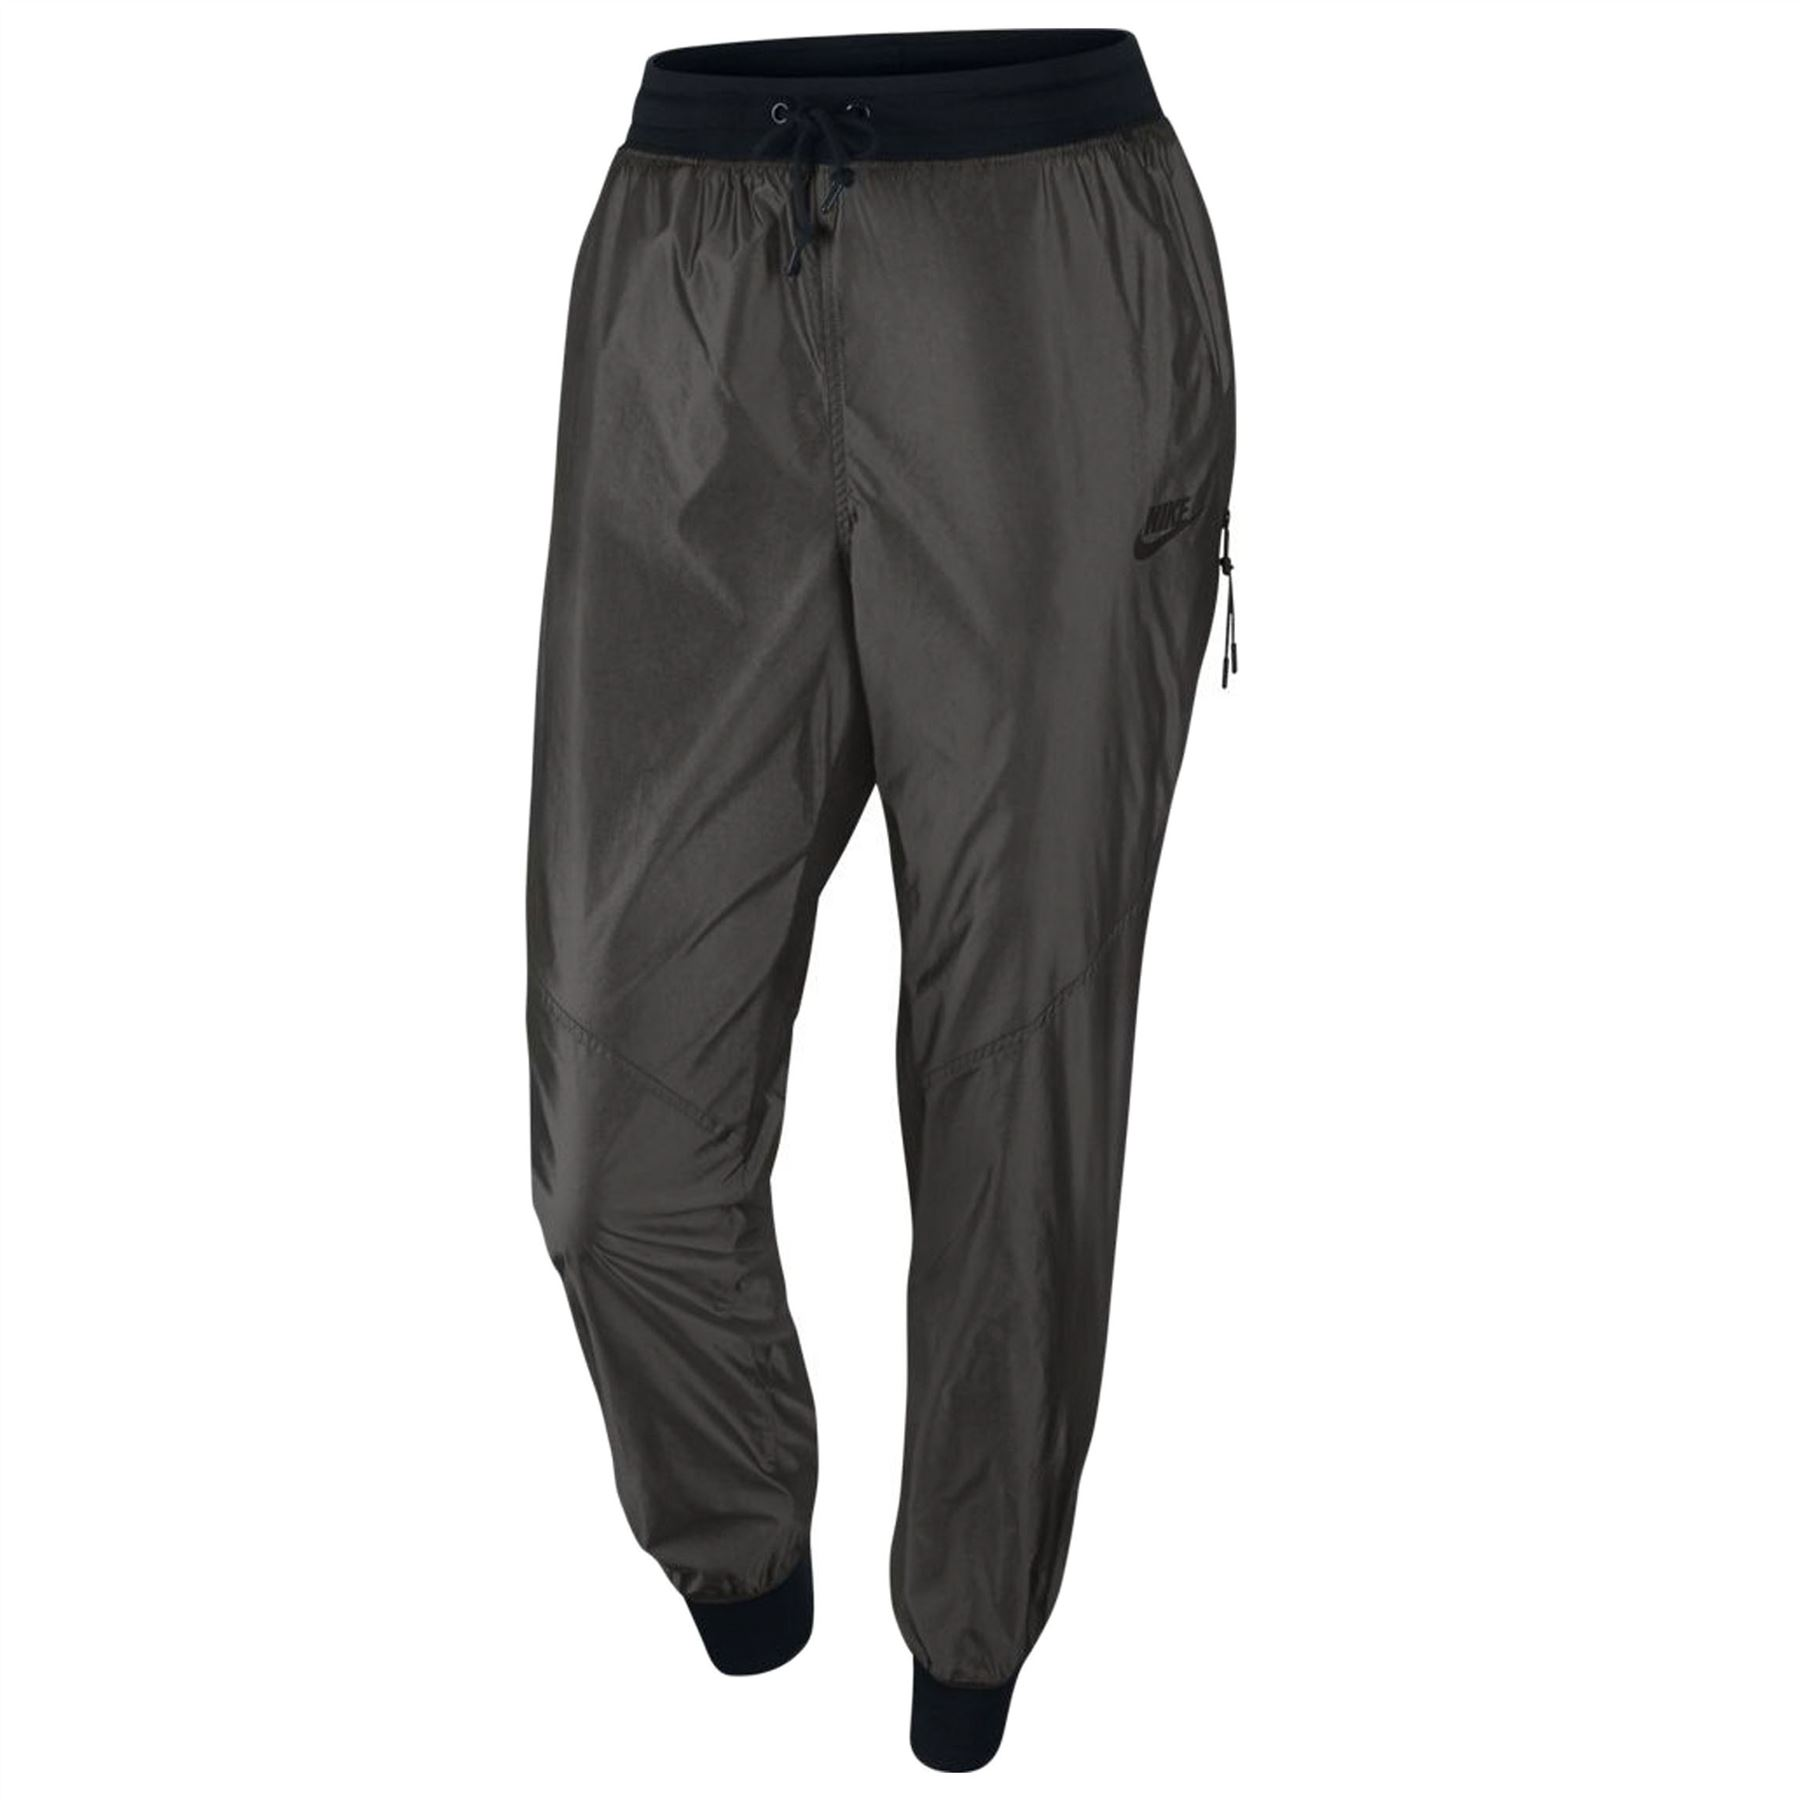 Unique NIKE DARK GREY WOMEN TRACK PANTS  GOOGLE SEARCH On The Hunt